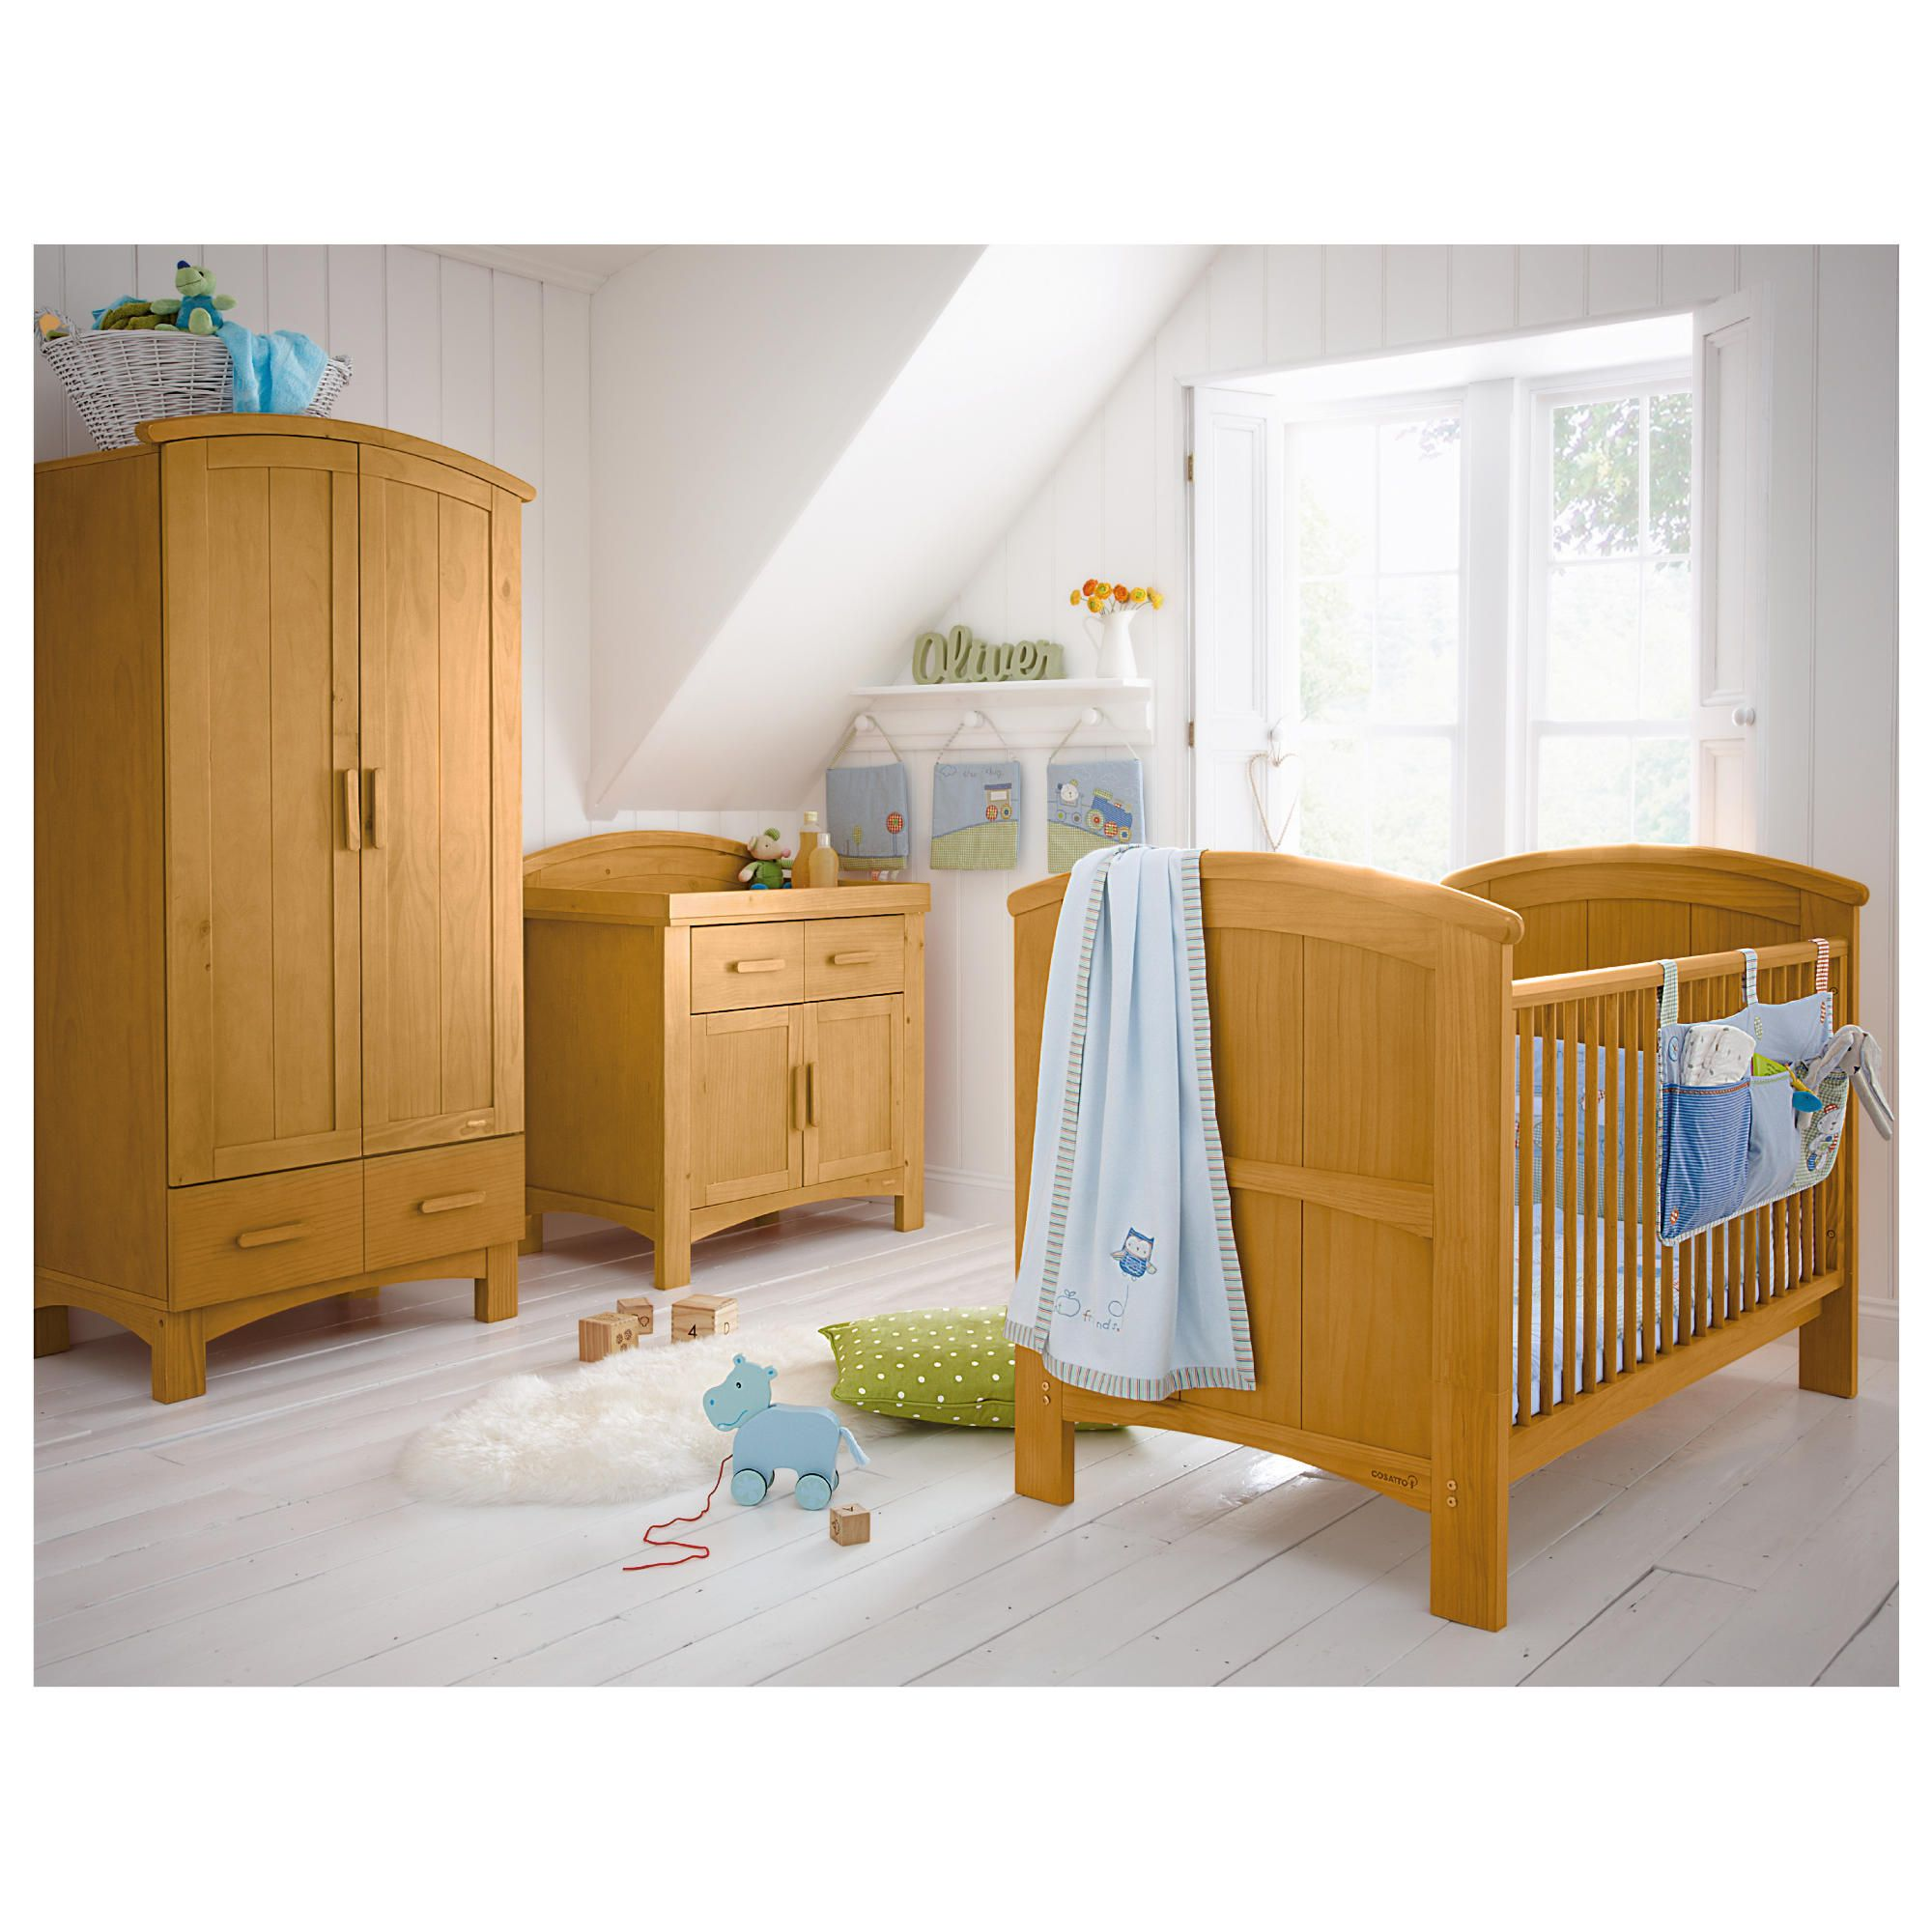 Cosatto Hogarth 3 Piece Room Set, Light Country Pine at Tesco Direct